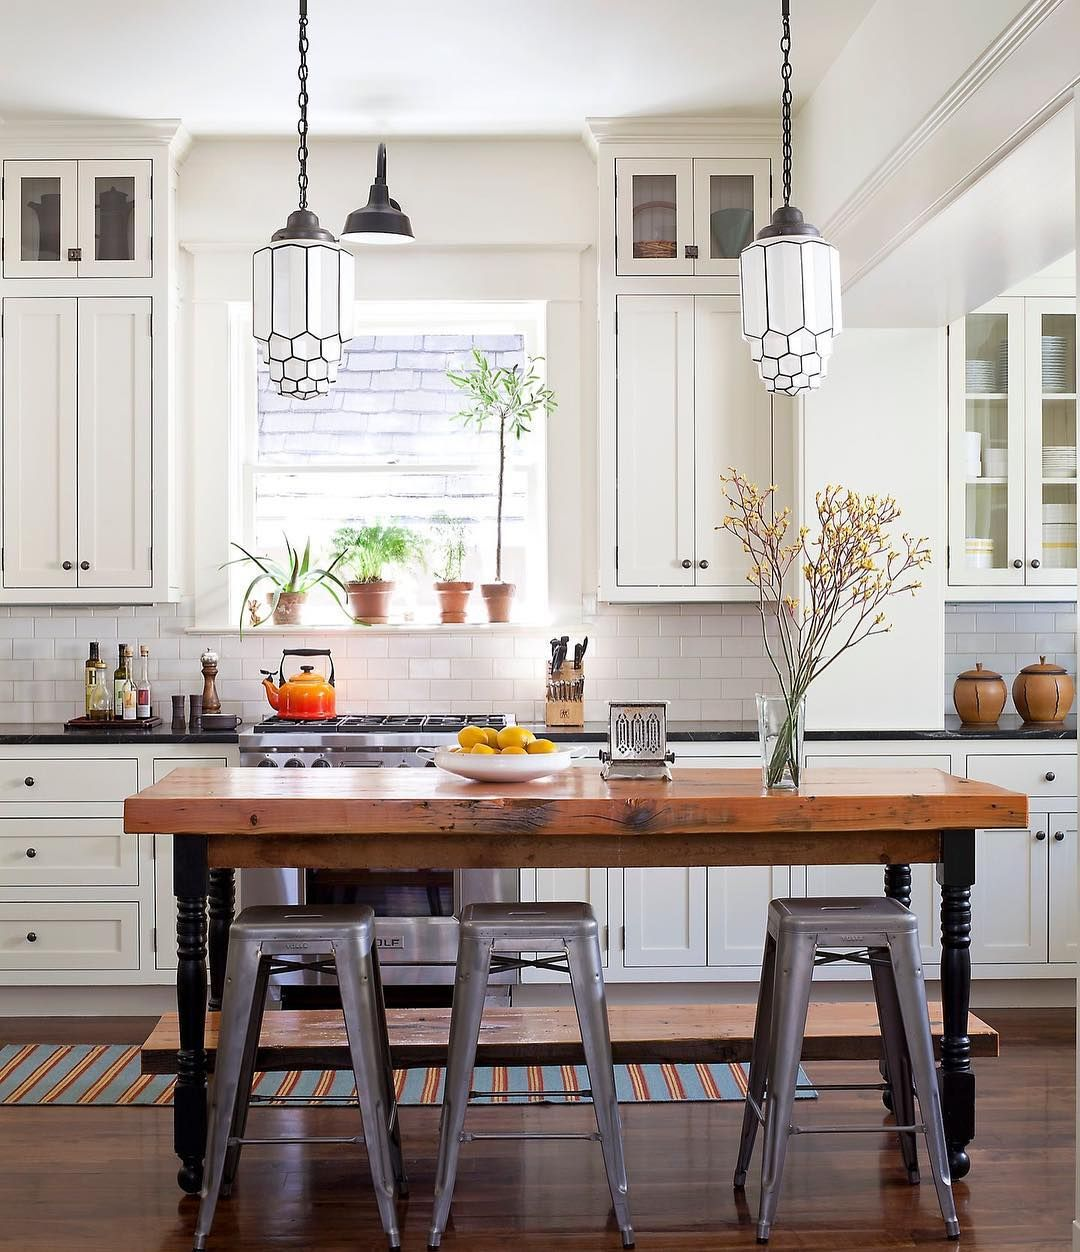 Galley Kitchen Light Fixtures: Pin By Barb Gilpin On Kitchen Ideas